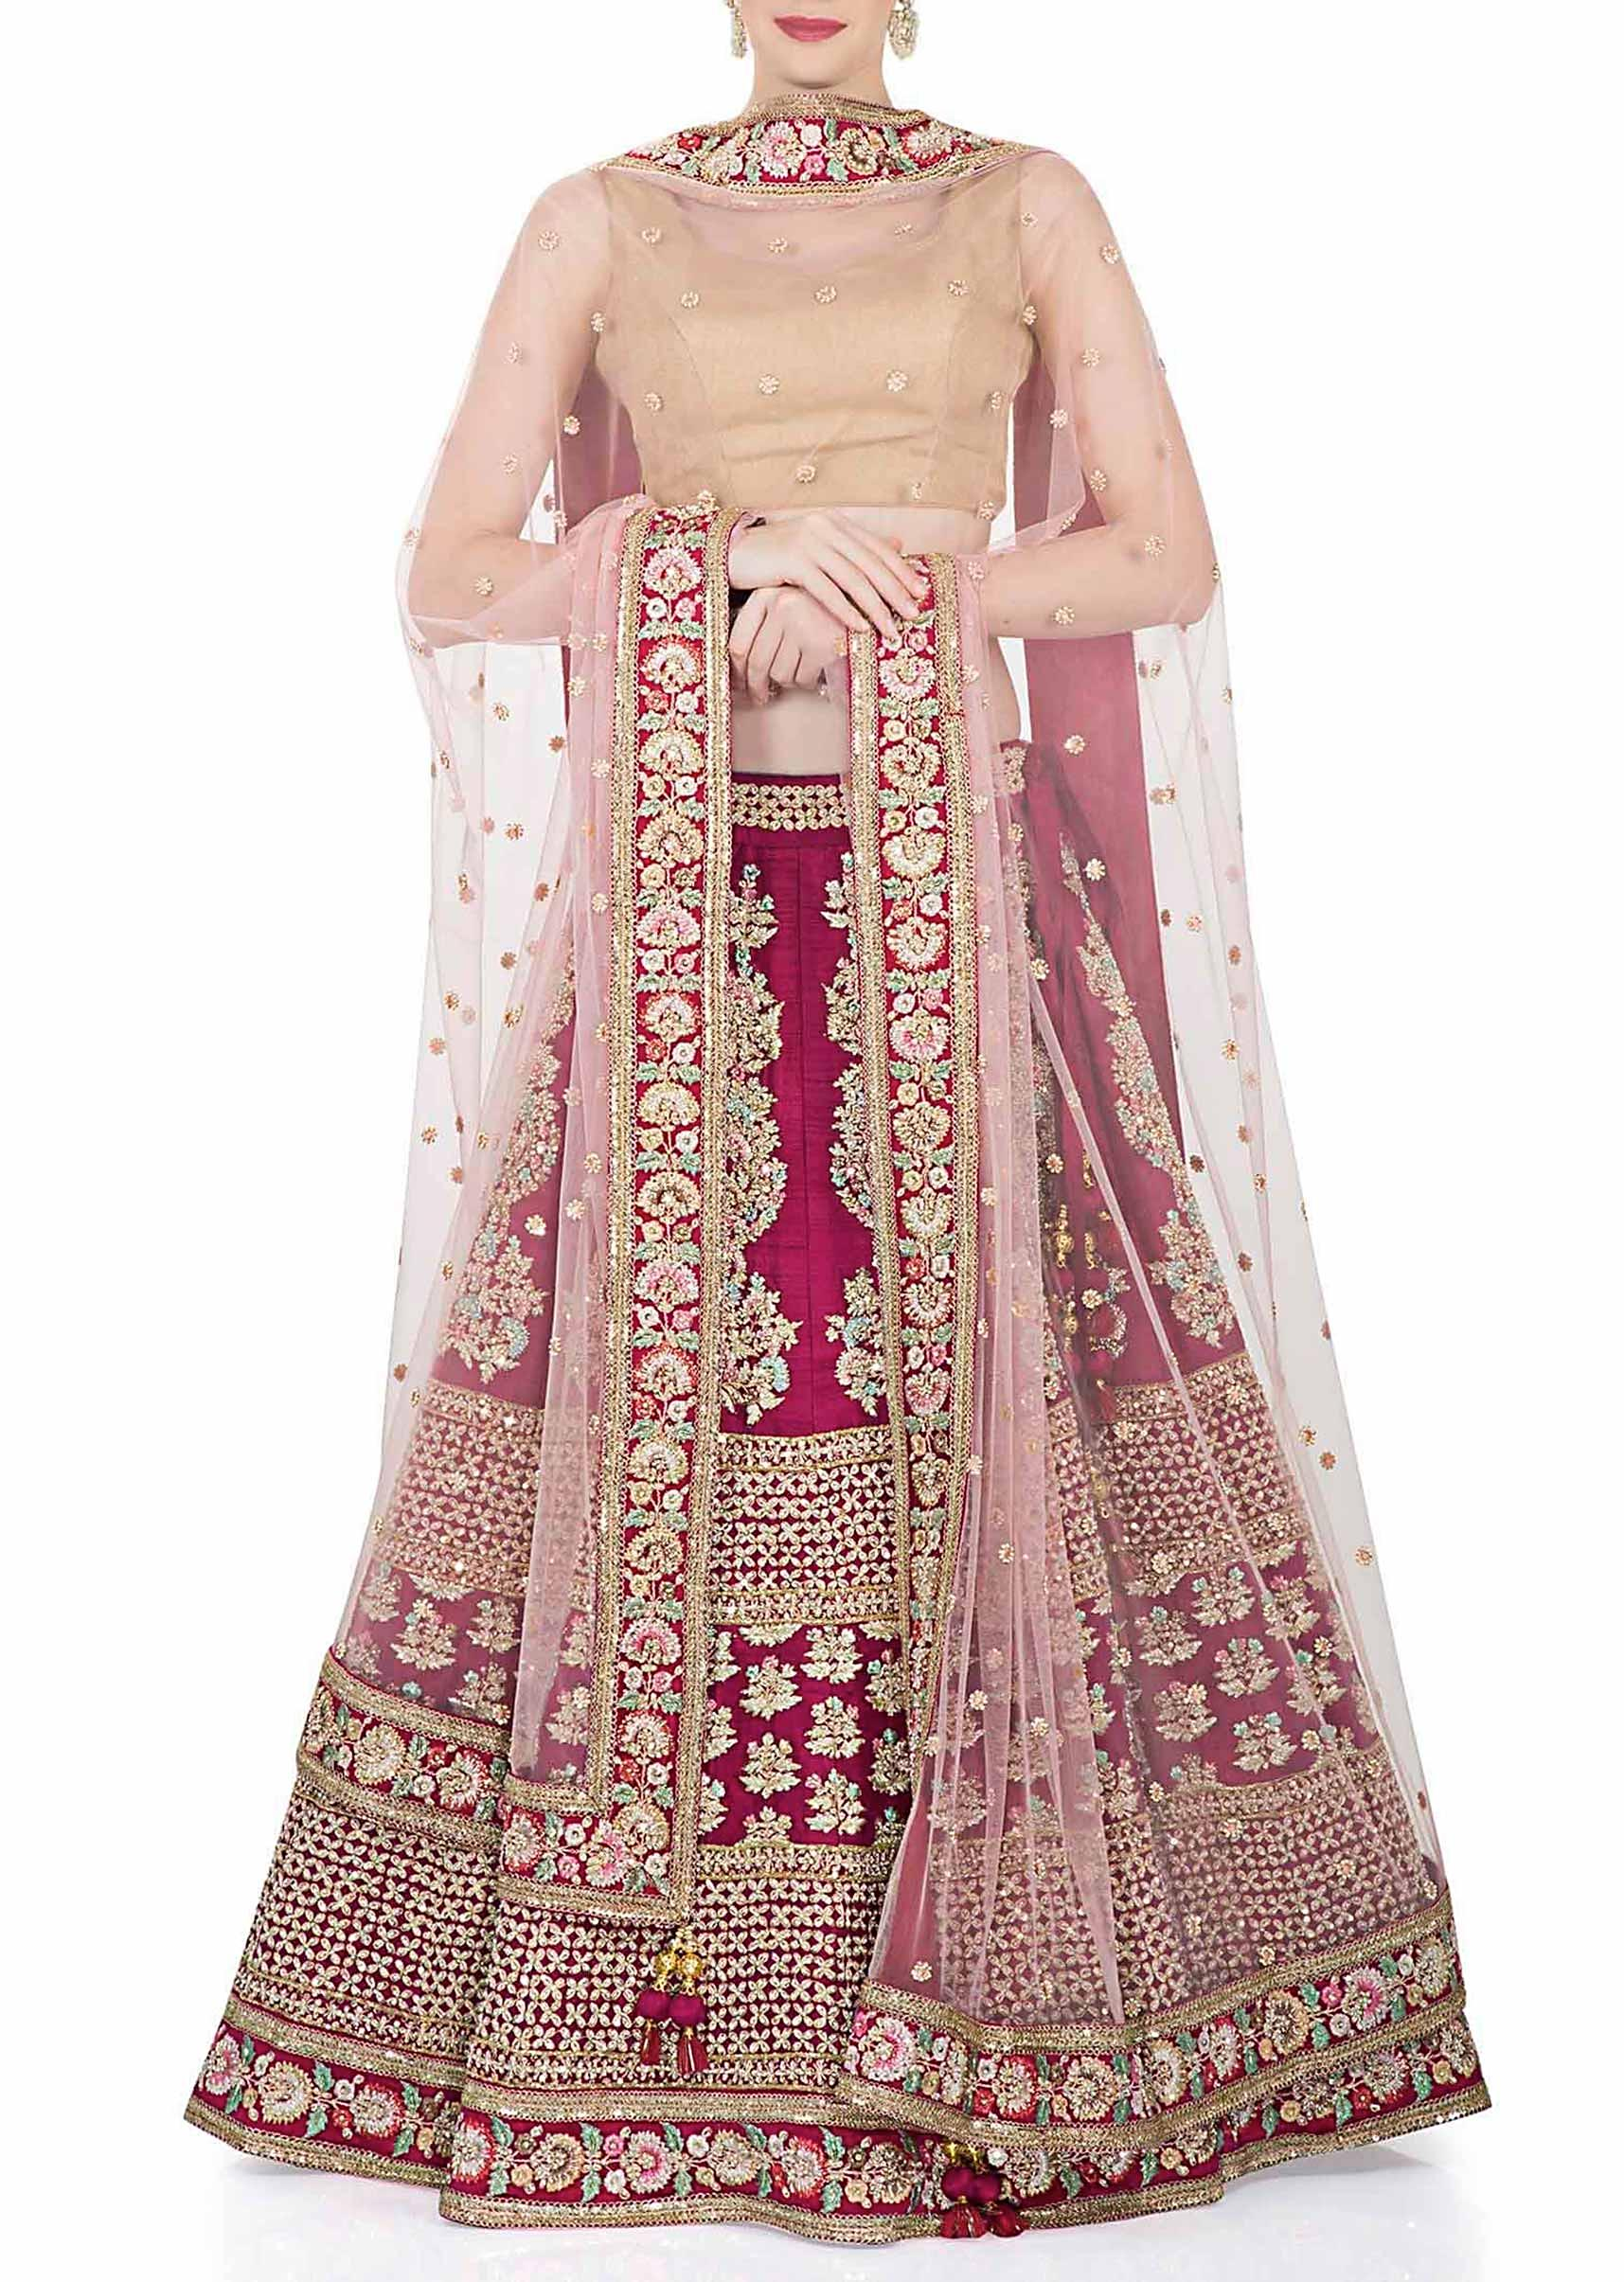 f8e8c55c8f Rani Pink Raw Silk Lehenga, Blouse and Pink Net Dupatta with Resham,  Sequins and Zari only on KalkiMore Detail